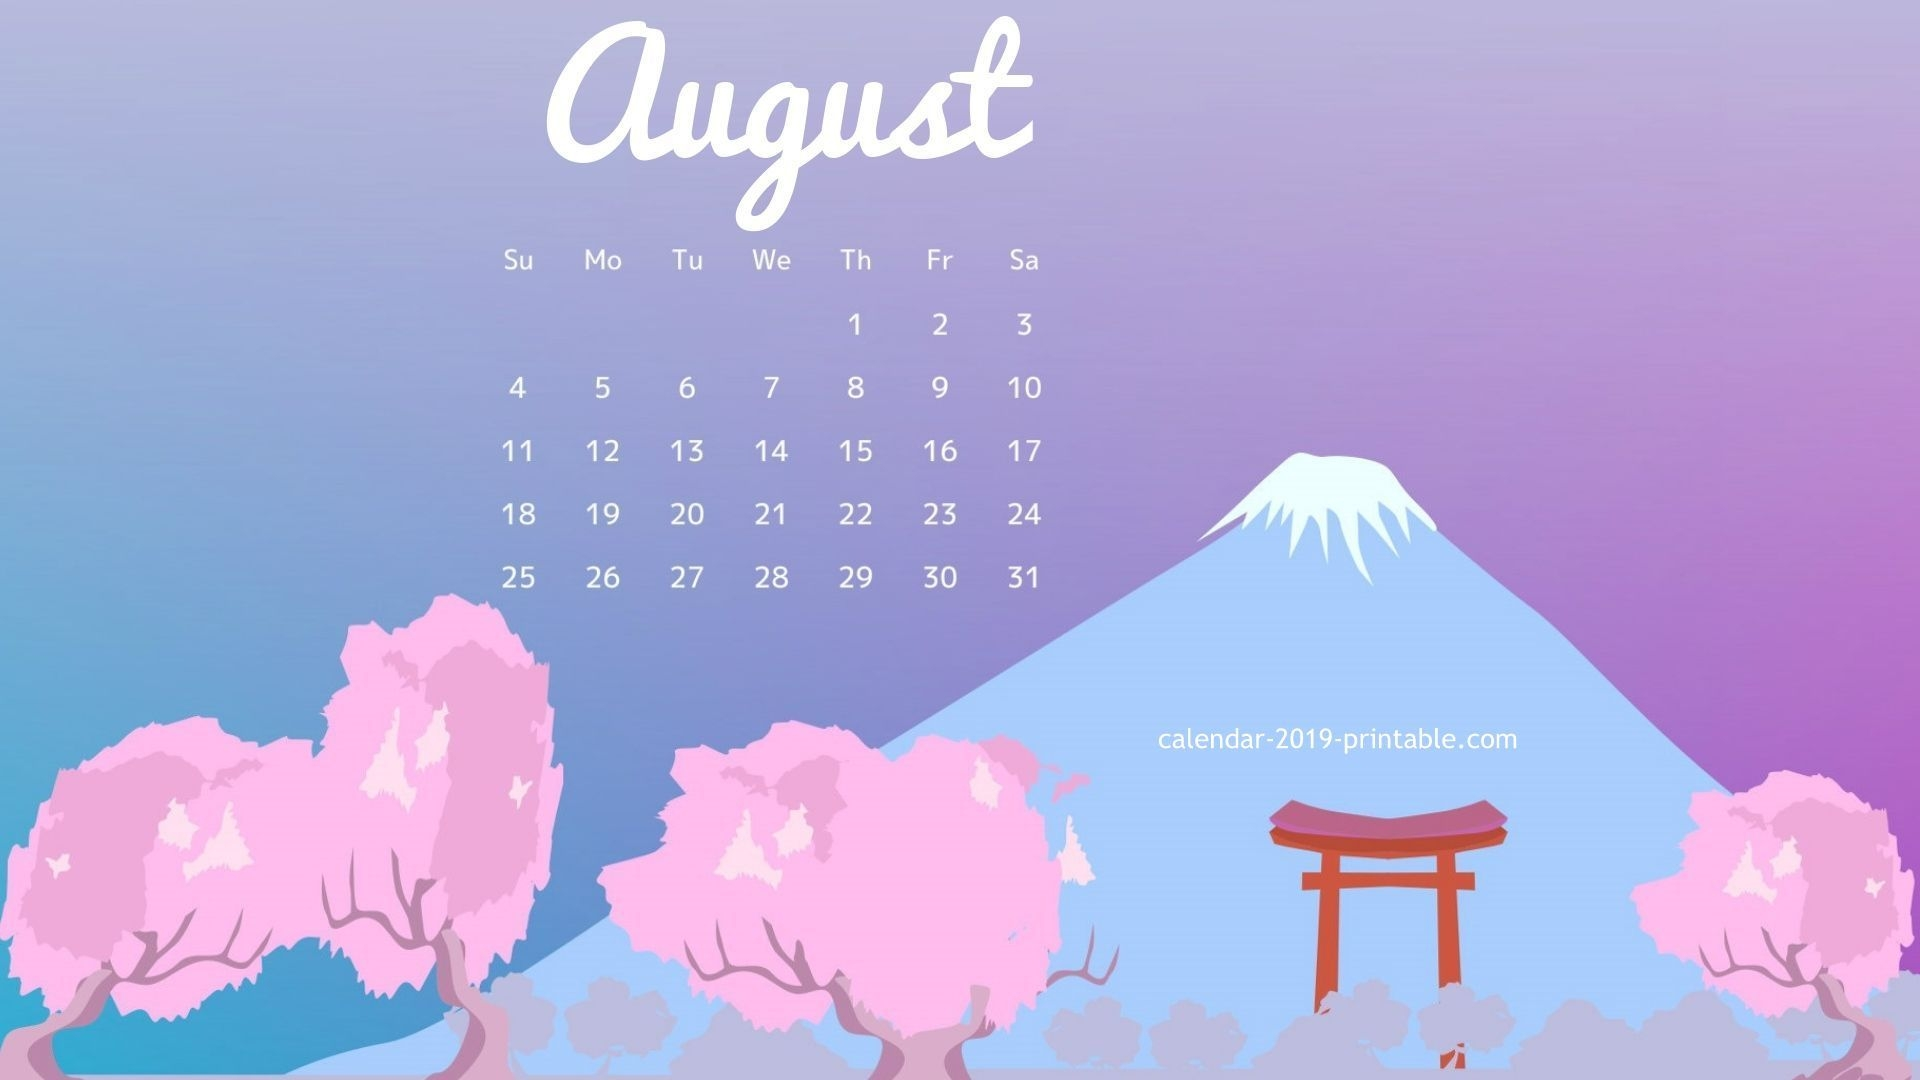 august 2019 calendar desktop wallpapers calendar 2019 wallpapers::August 2019 iPhone Calendar Wallpaper